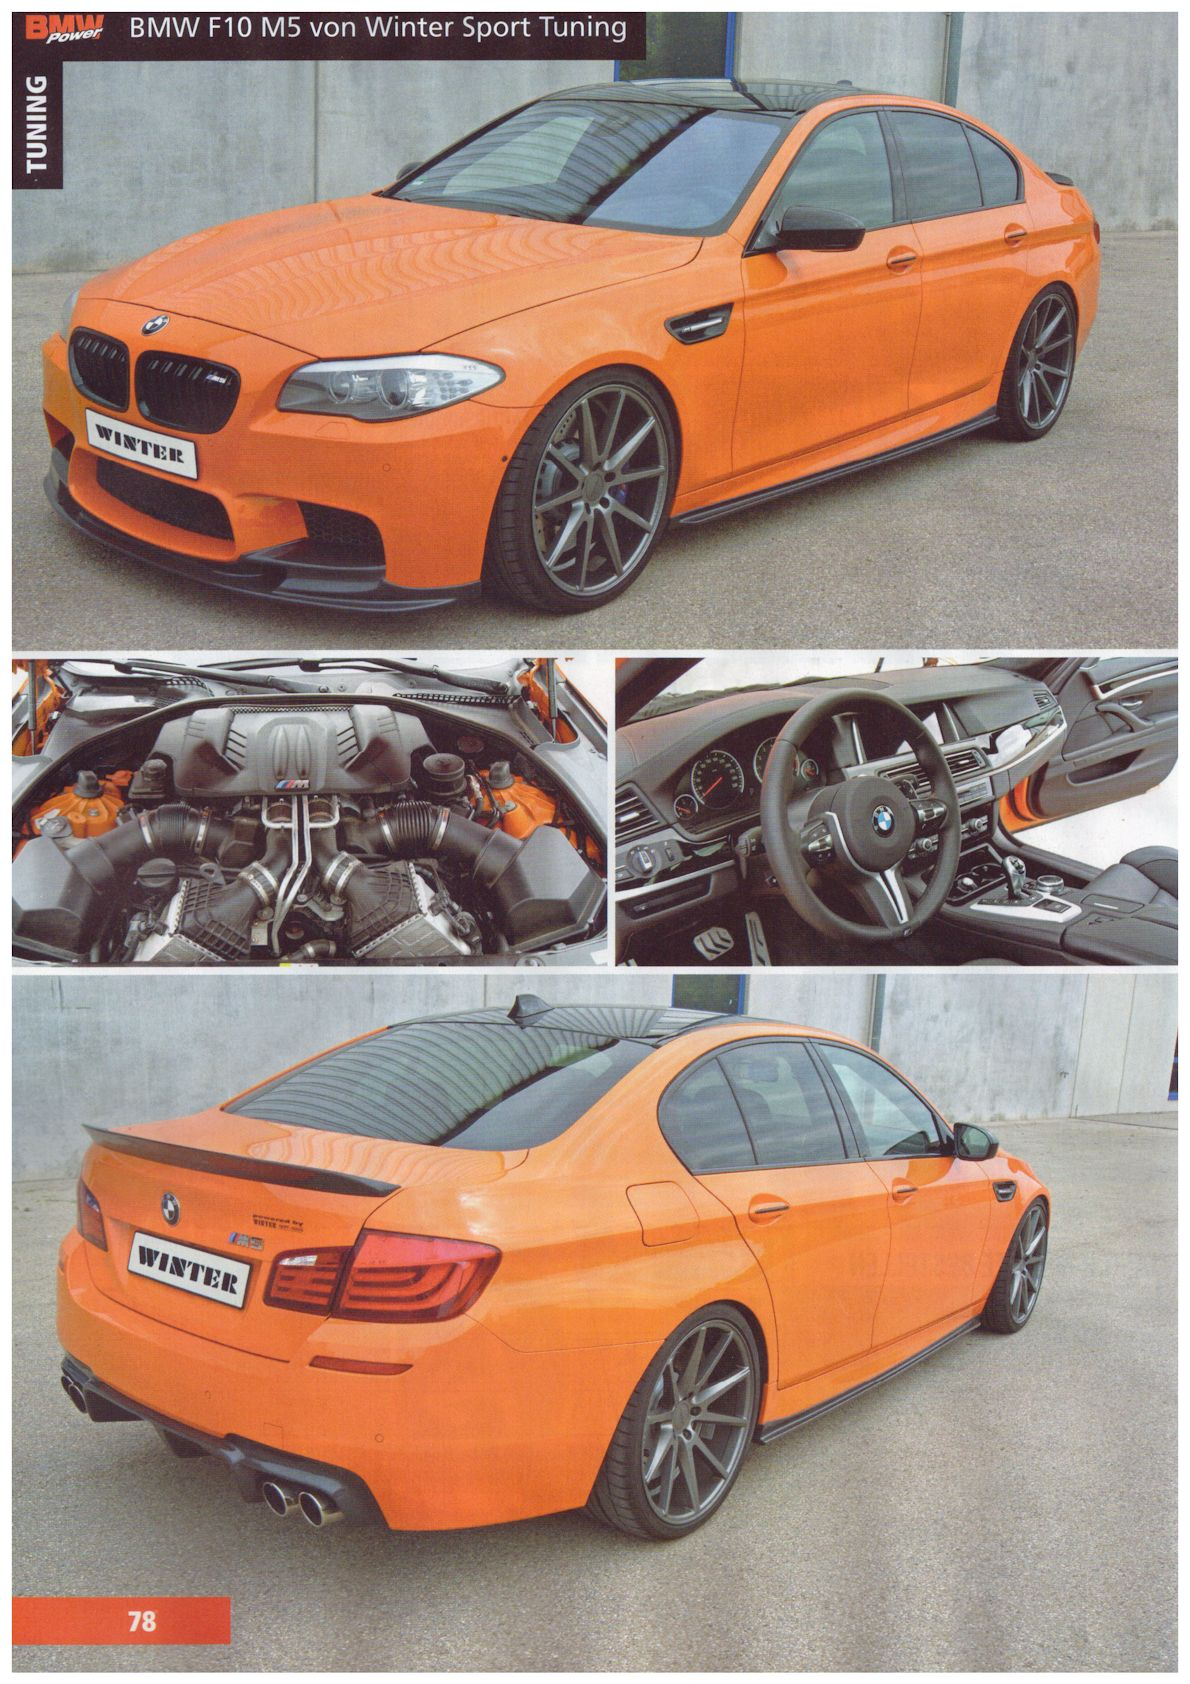 bmw power 16 6 m5 f10 1 40